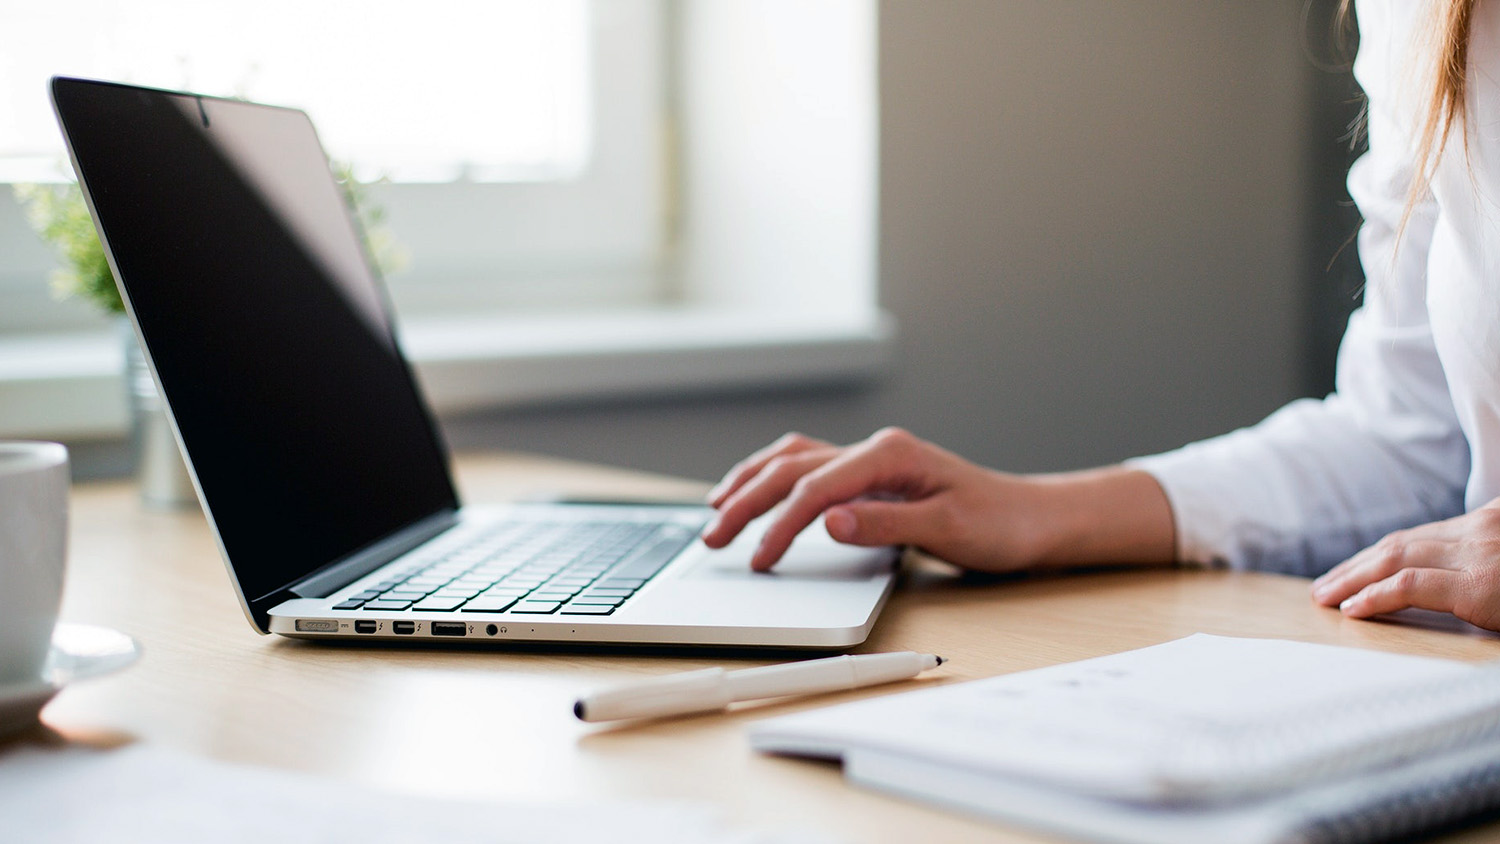 woman's hands typing at laptop on desk